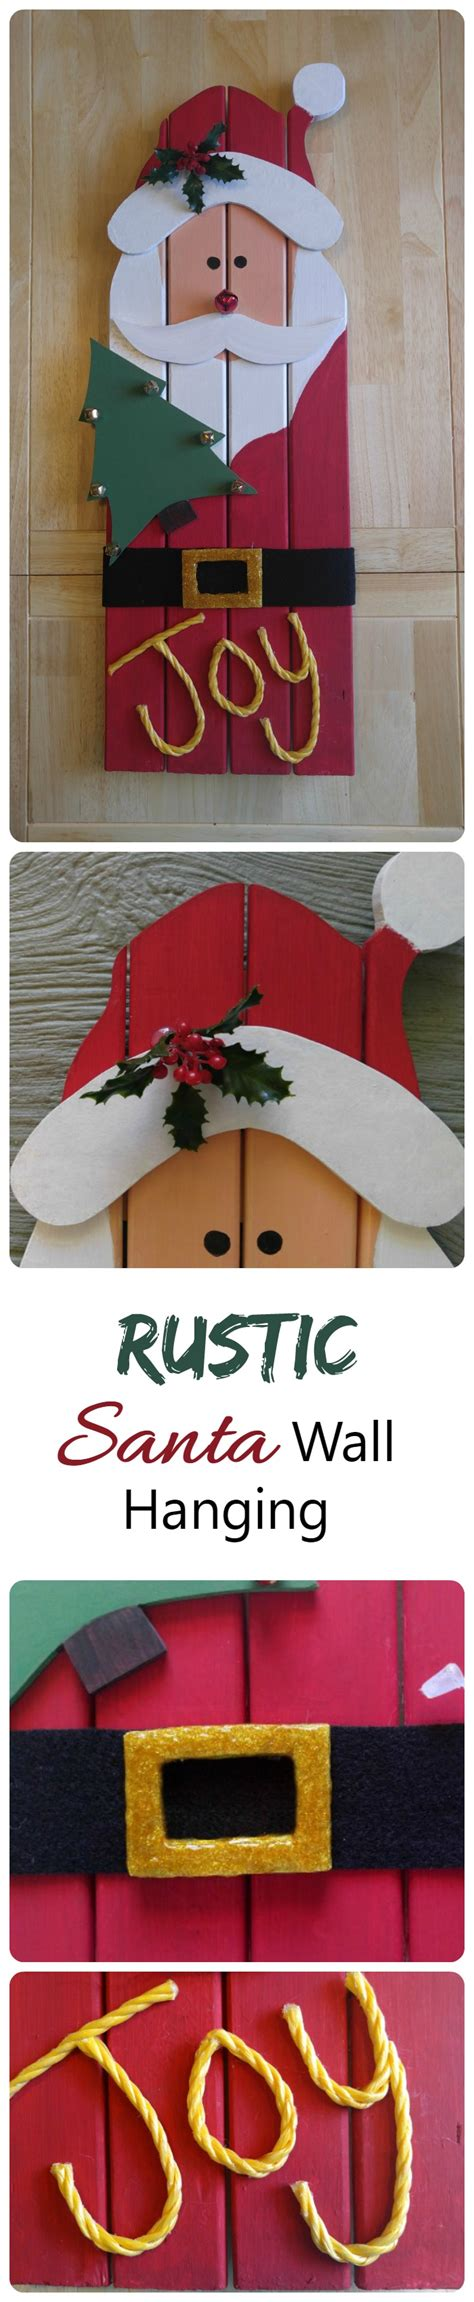 santa claus wall hanging diy christmas project